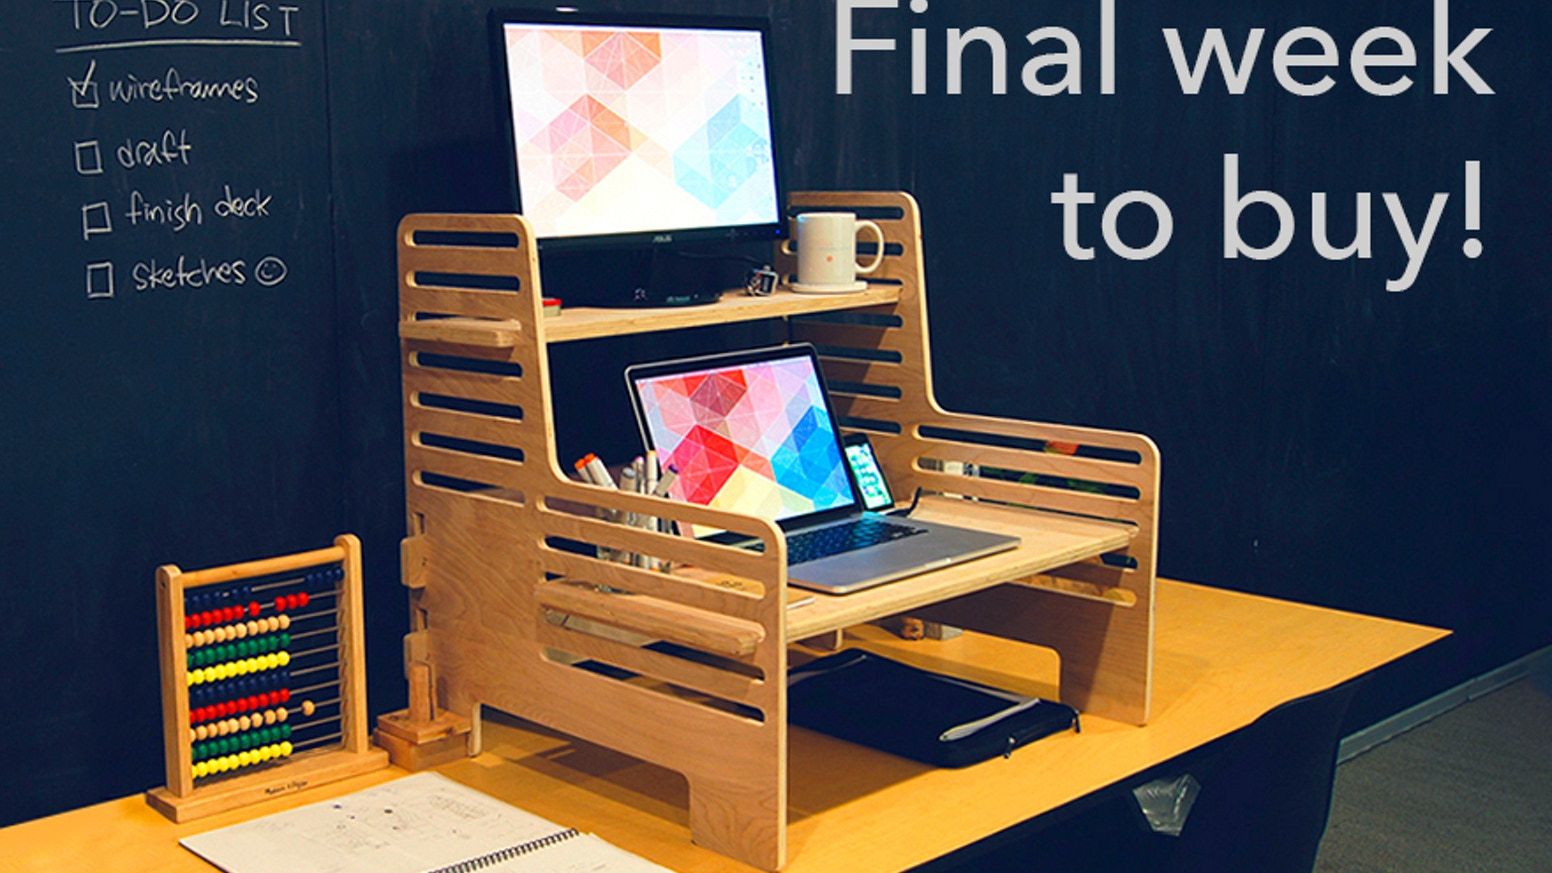 Turn any desk or table into a standing desk with the adjustable, portable, affordable UpStanding Desk. Think on your feet. Visit www.theupstandingdesk.com